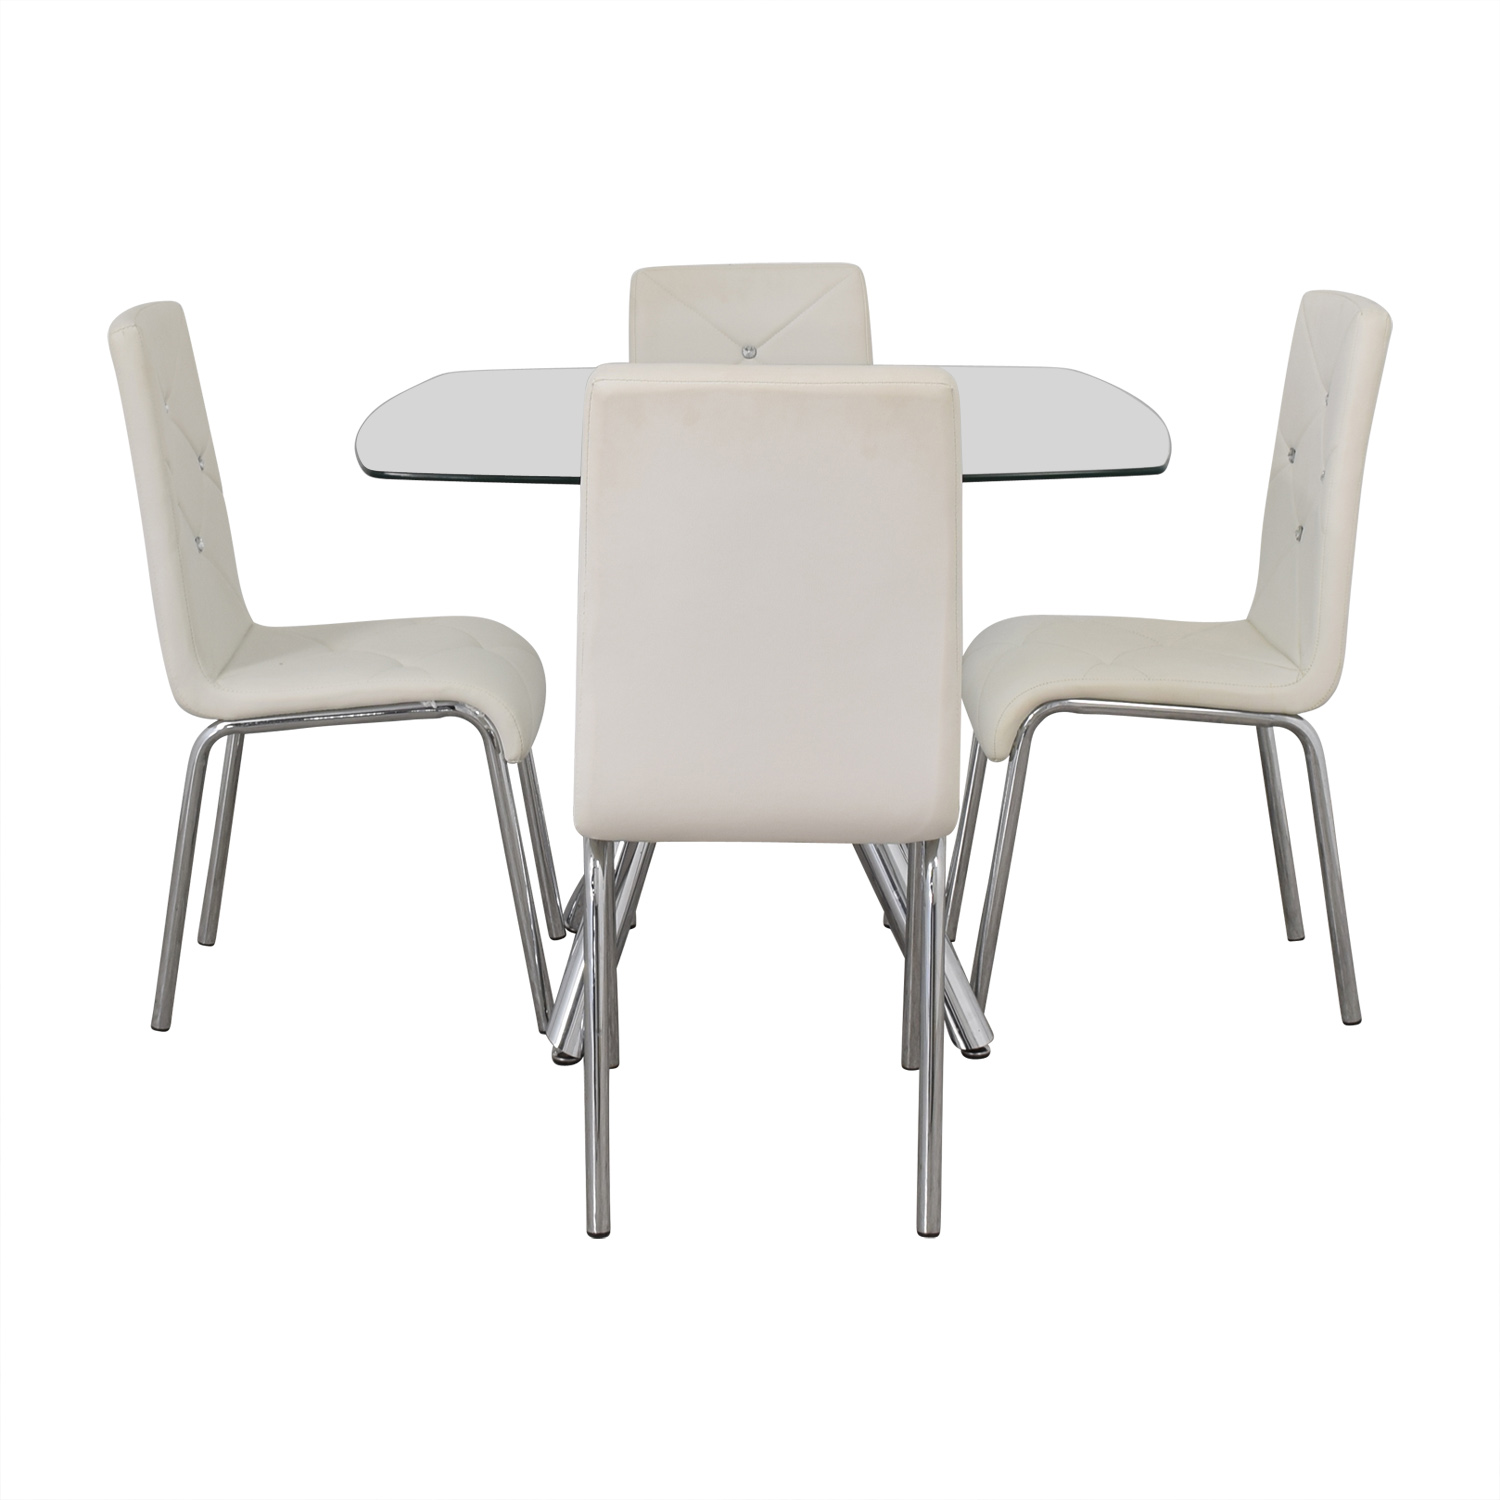 87 Off Glass And Chrome Dining Set With White Tufted